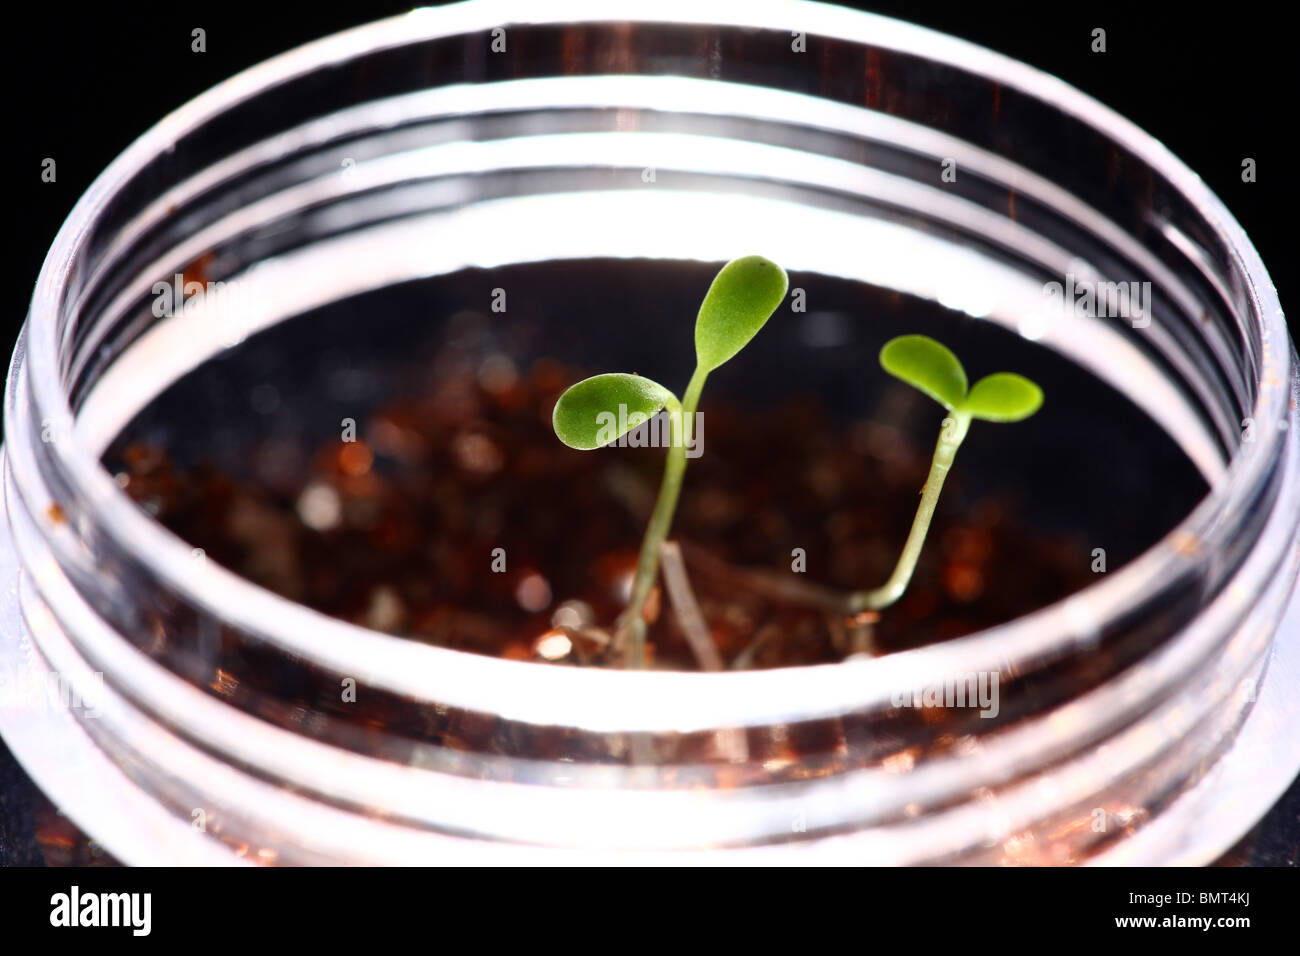 germ bud of clover, plants at a hotbed, agars, in a glass bowl, labor - Stock Image